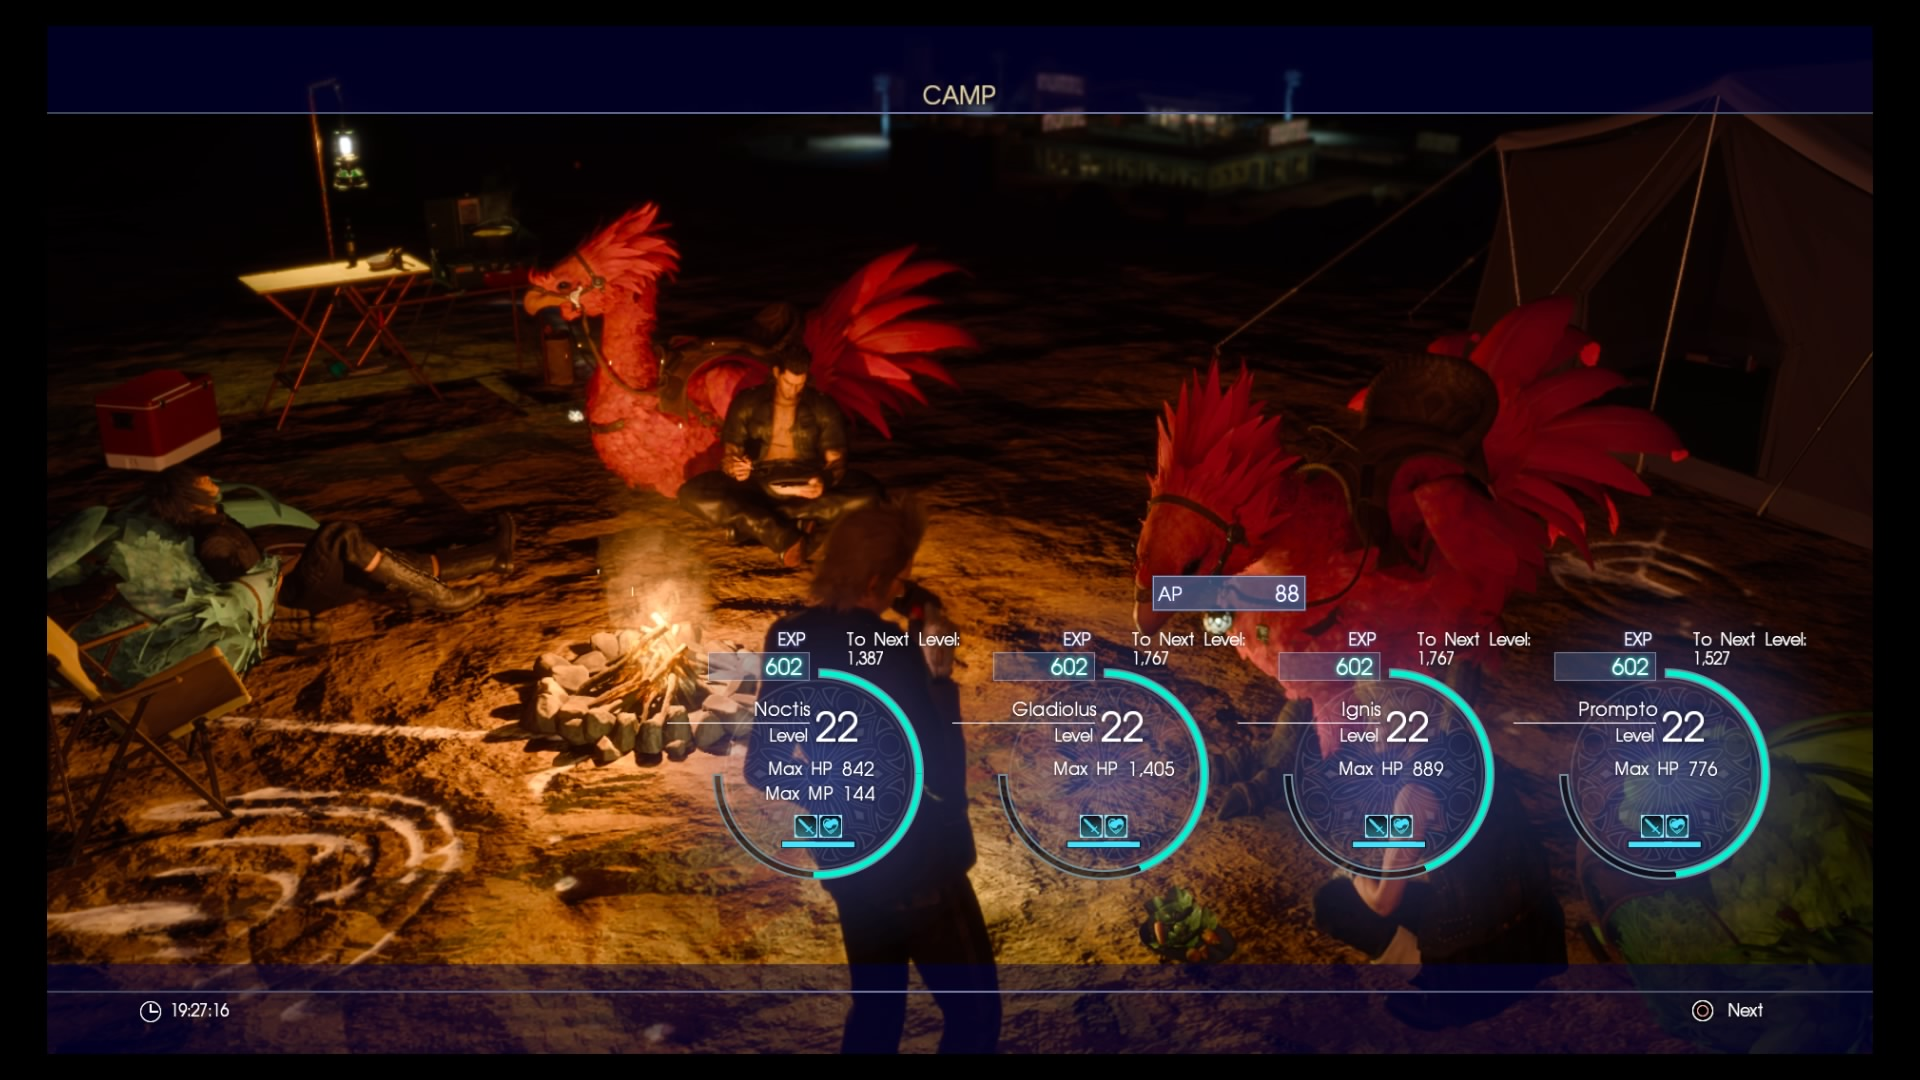 Goondu Review Final Fantasy Xv Techgoondu Deluxe Edition Region 3 Camping With Chocobos These Tame Birds Are A Great Form Of Transportation Companionship And Entertainment Screenshot Yap Hui Bin